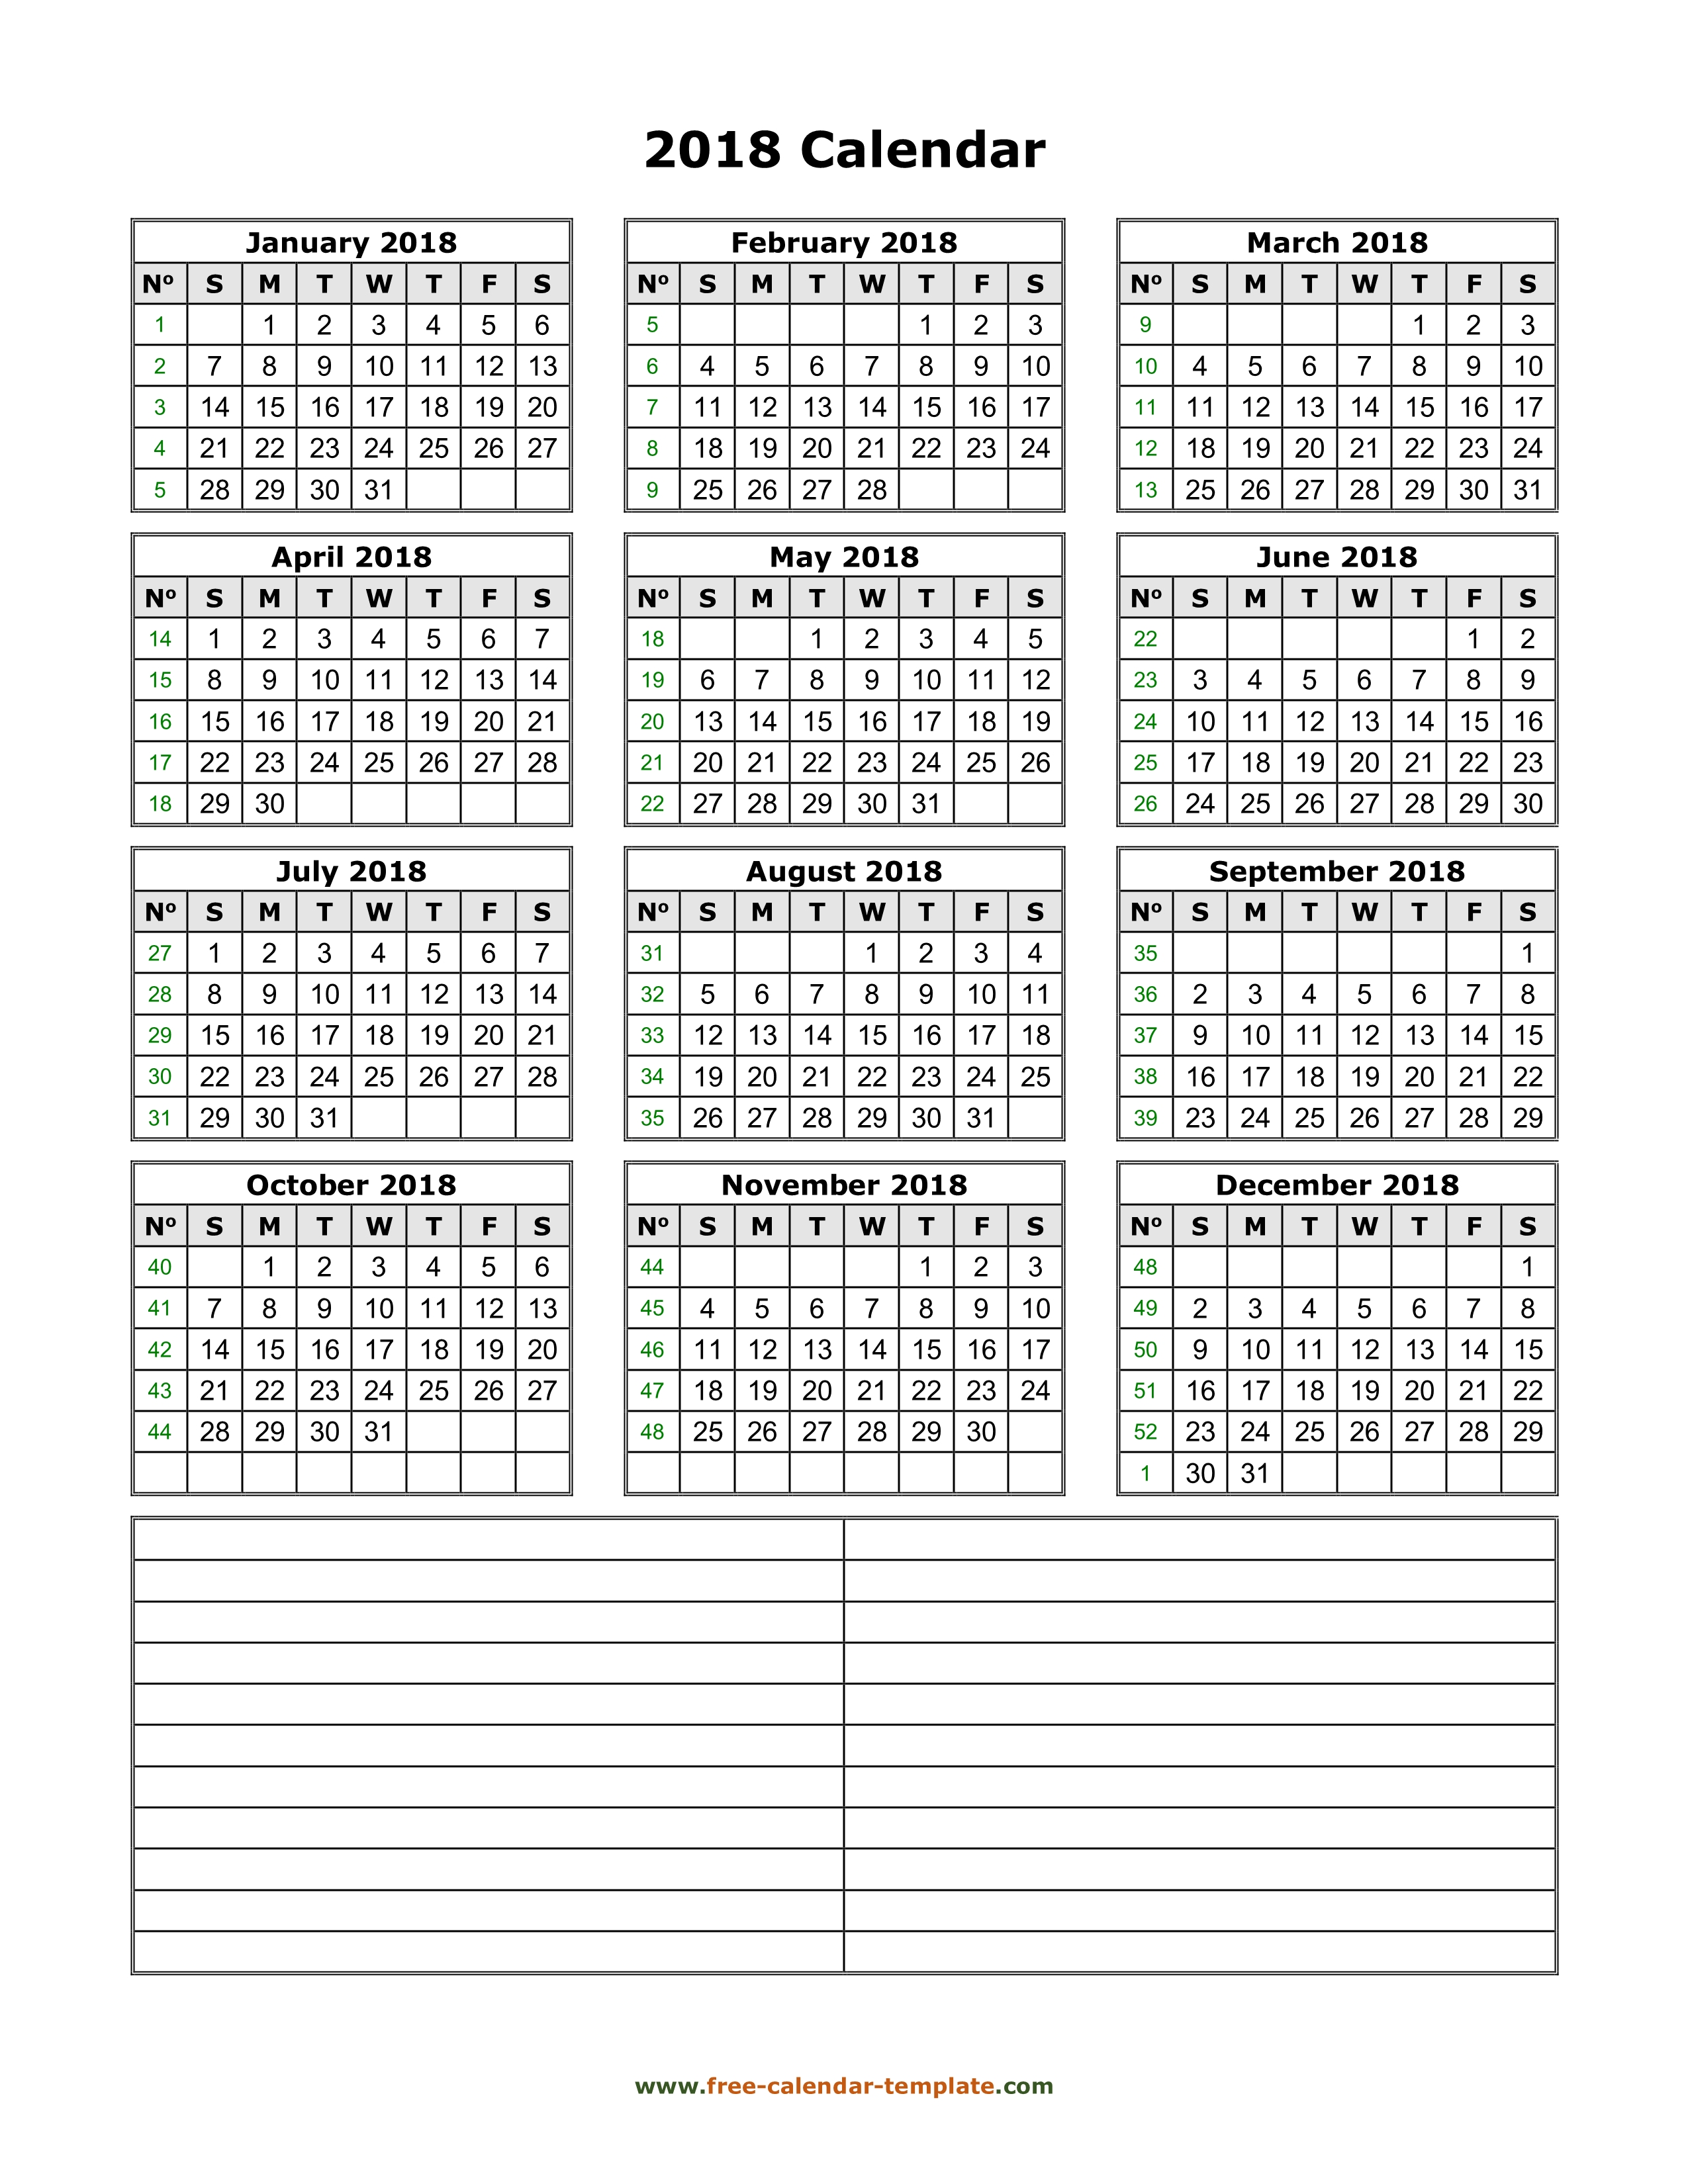 Yearly 2018 printable calendar with space for notes   Free-calendar ...